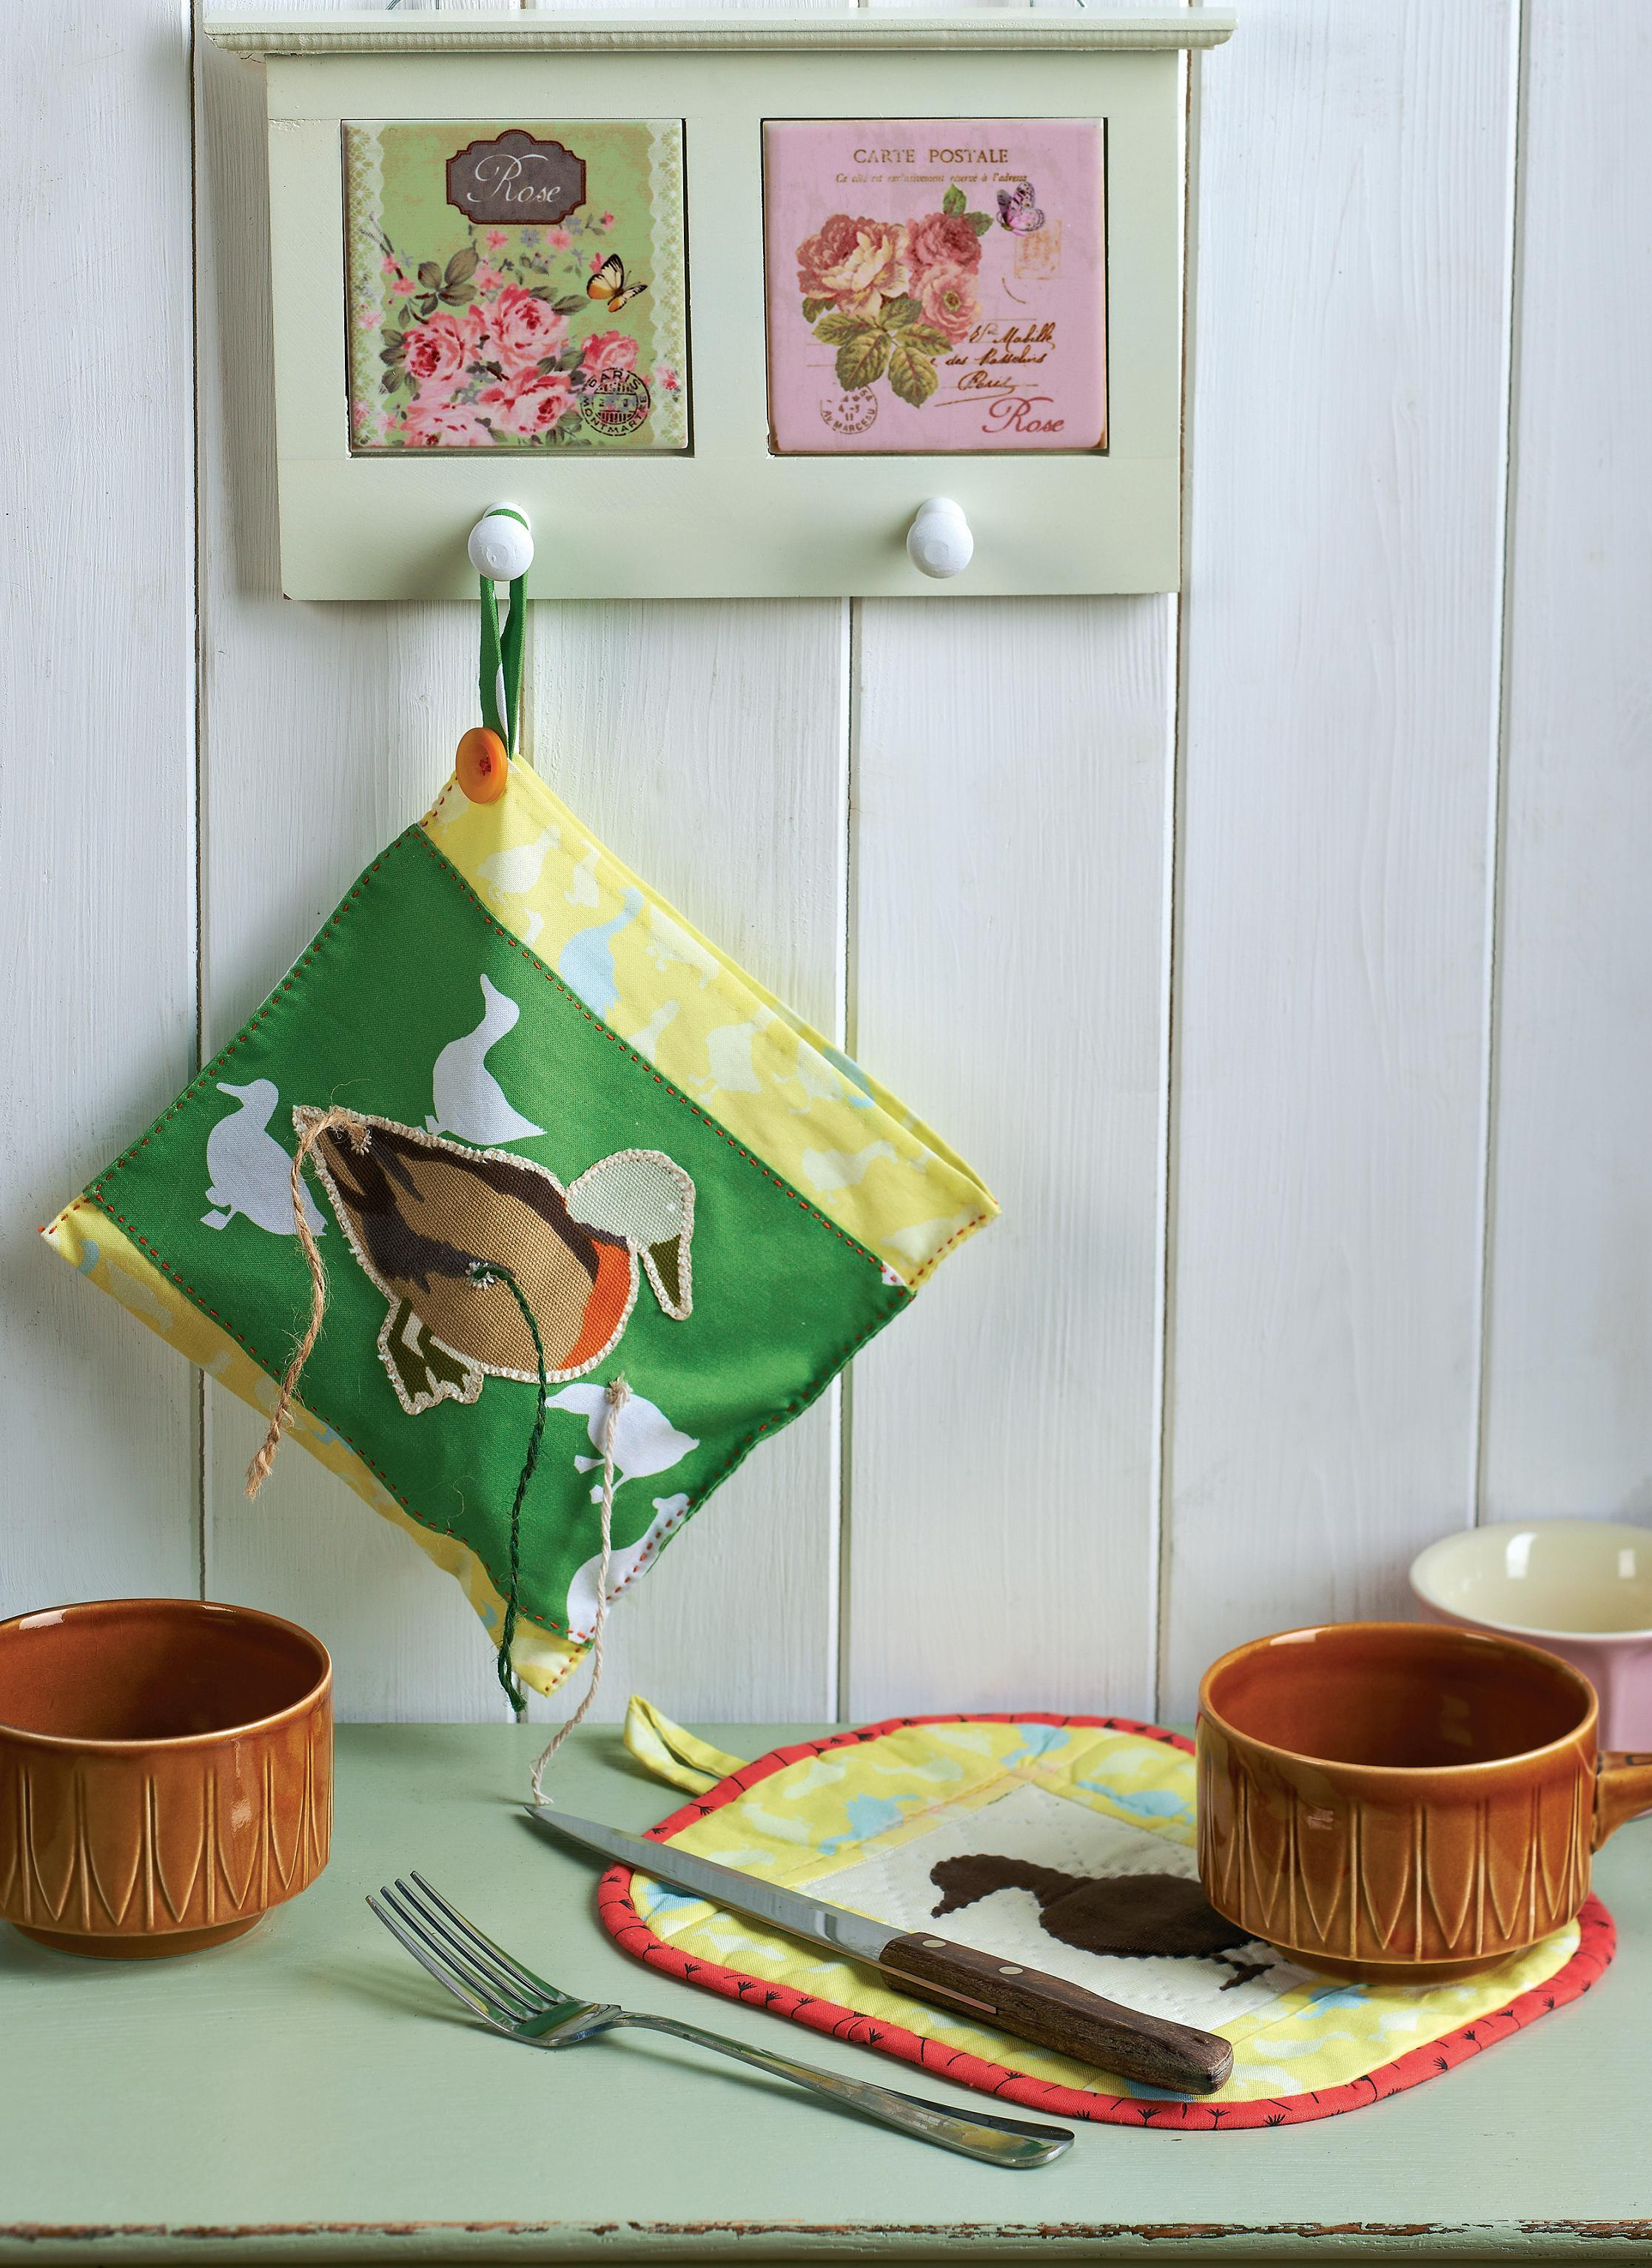 Farmyard Themed Oven Gloves Pot Holder And String